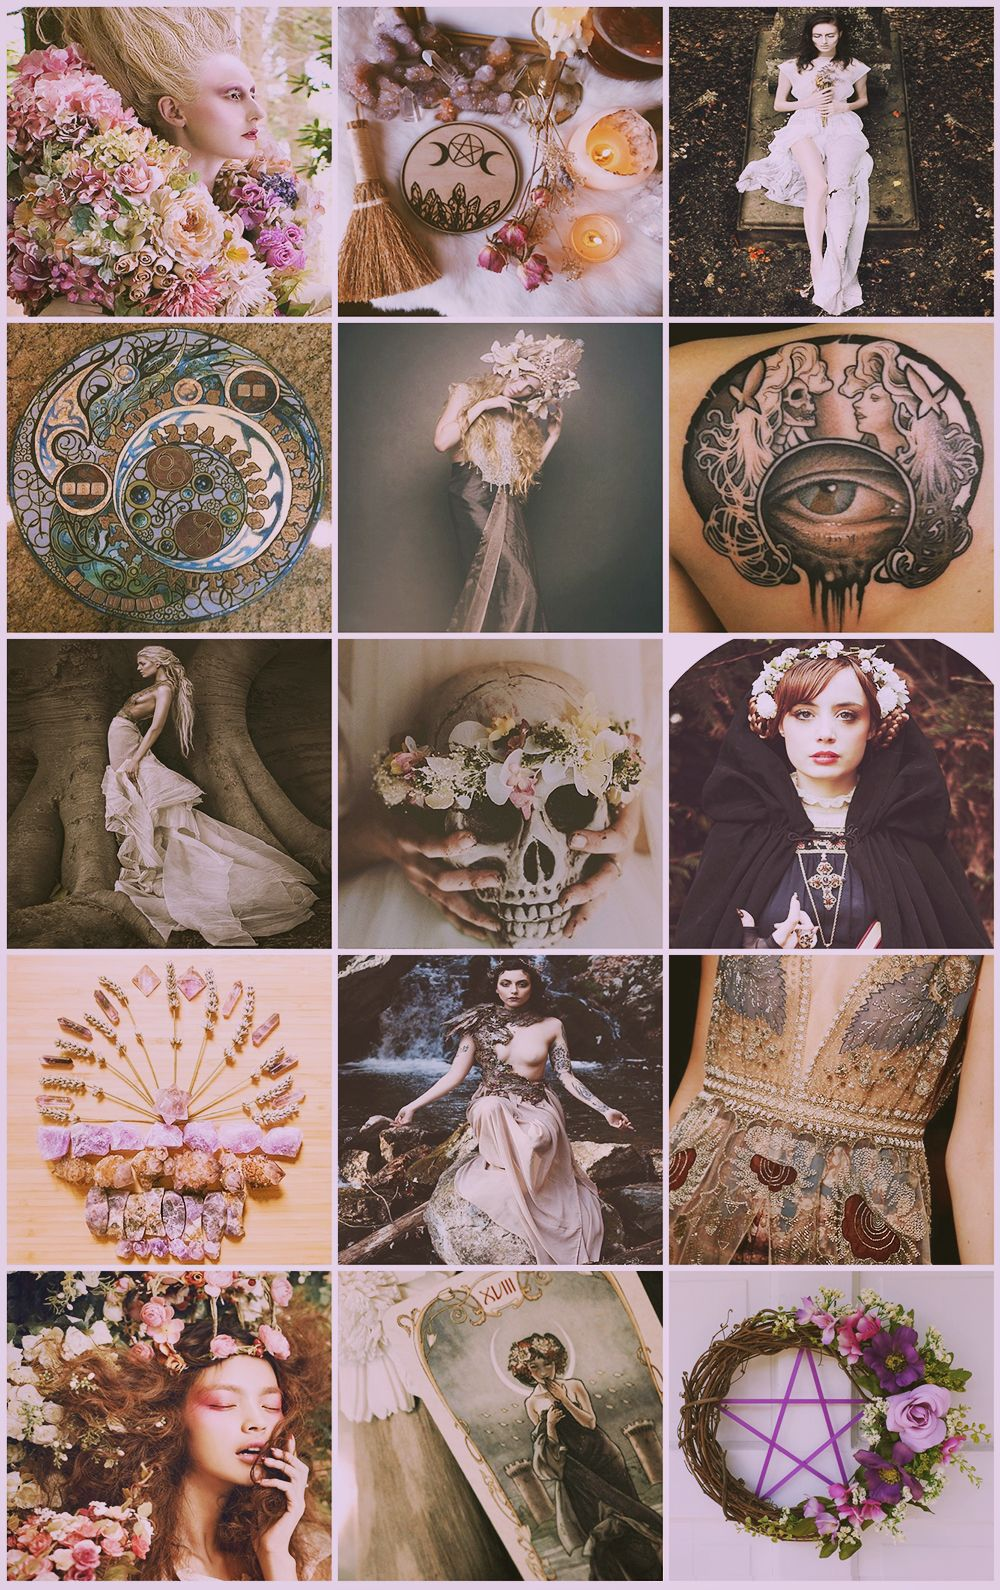 Mucha / Witch aesthetic